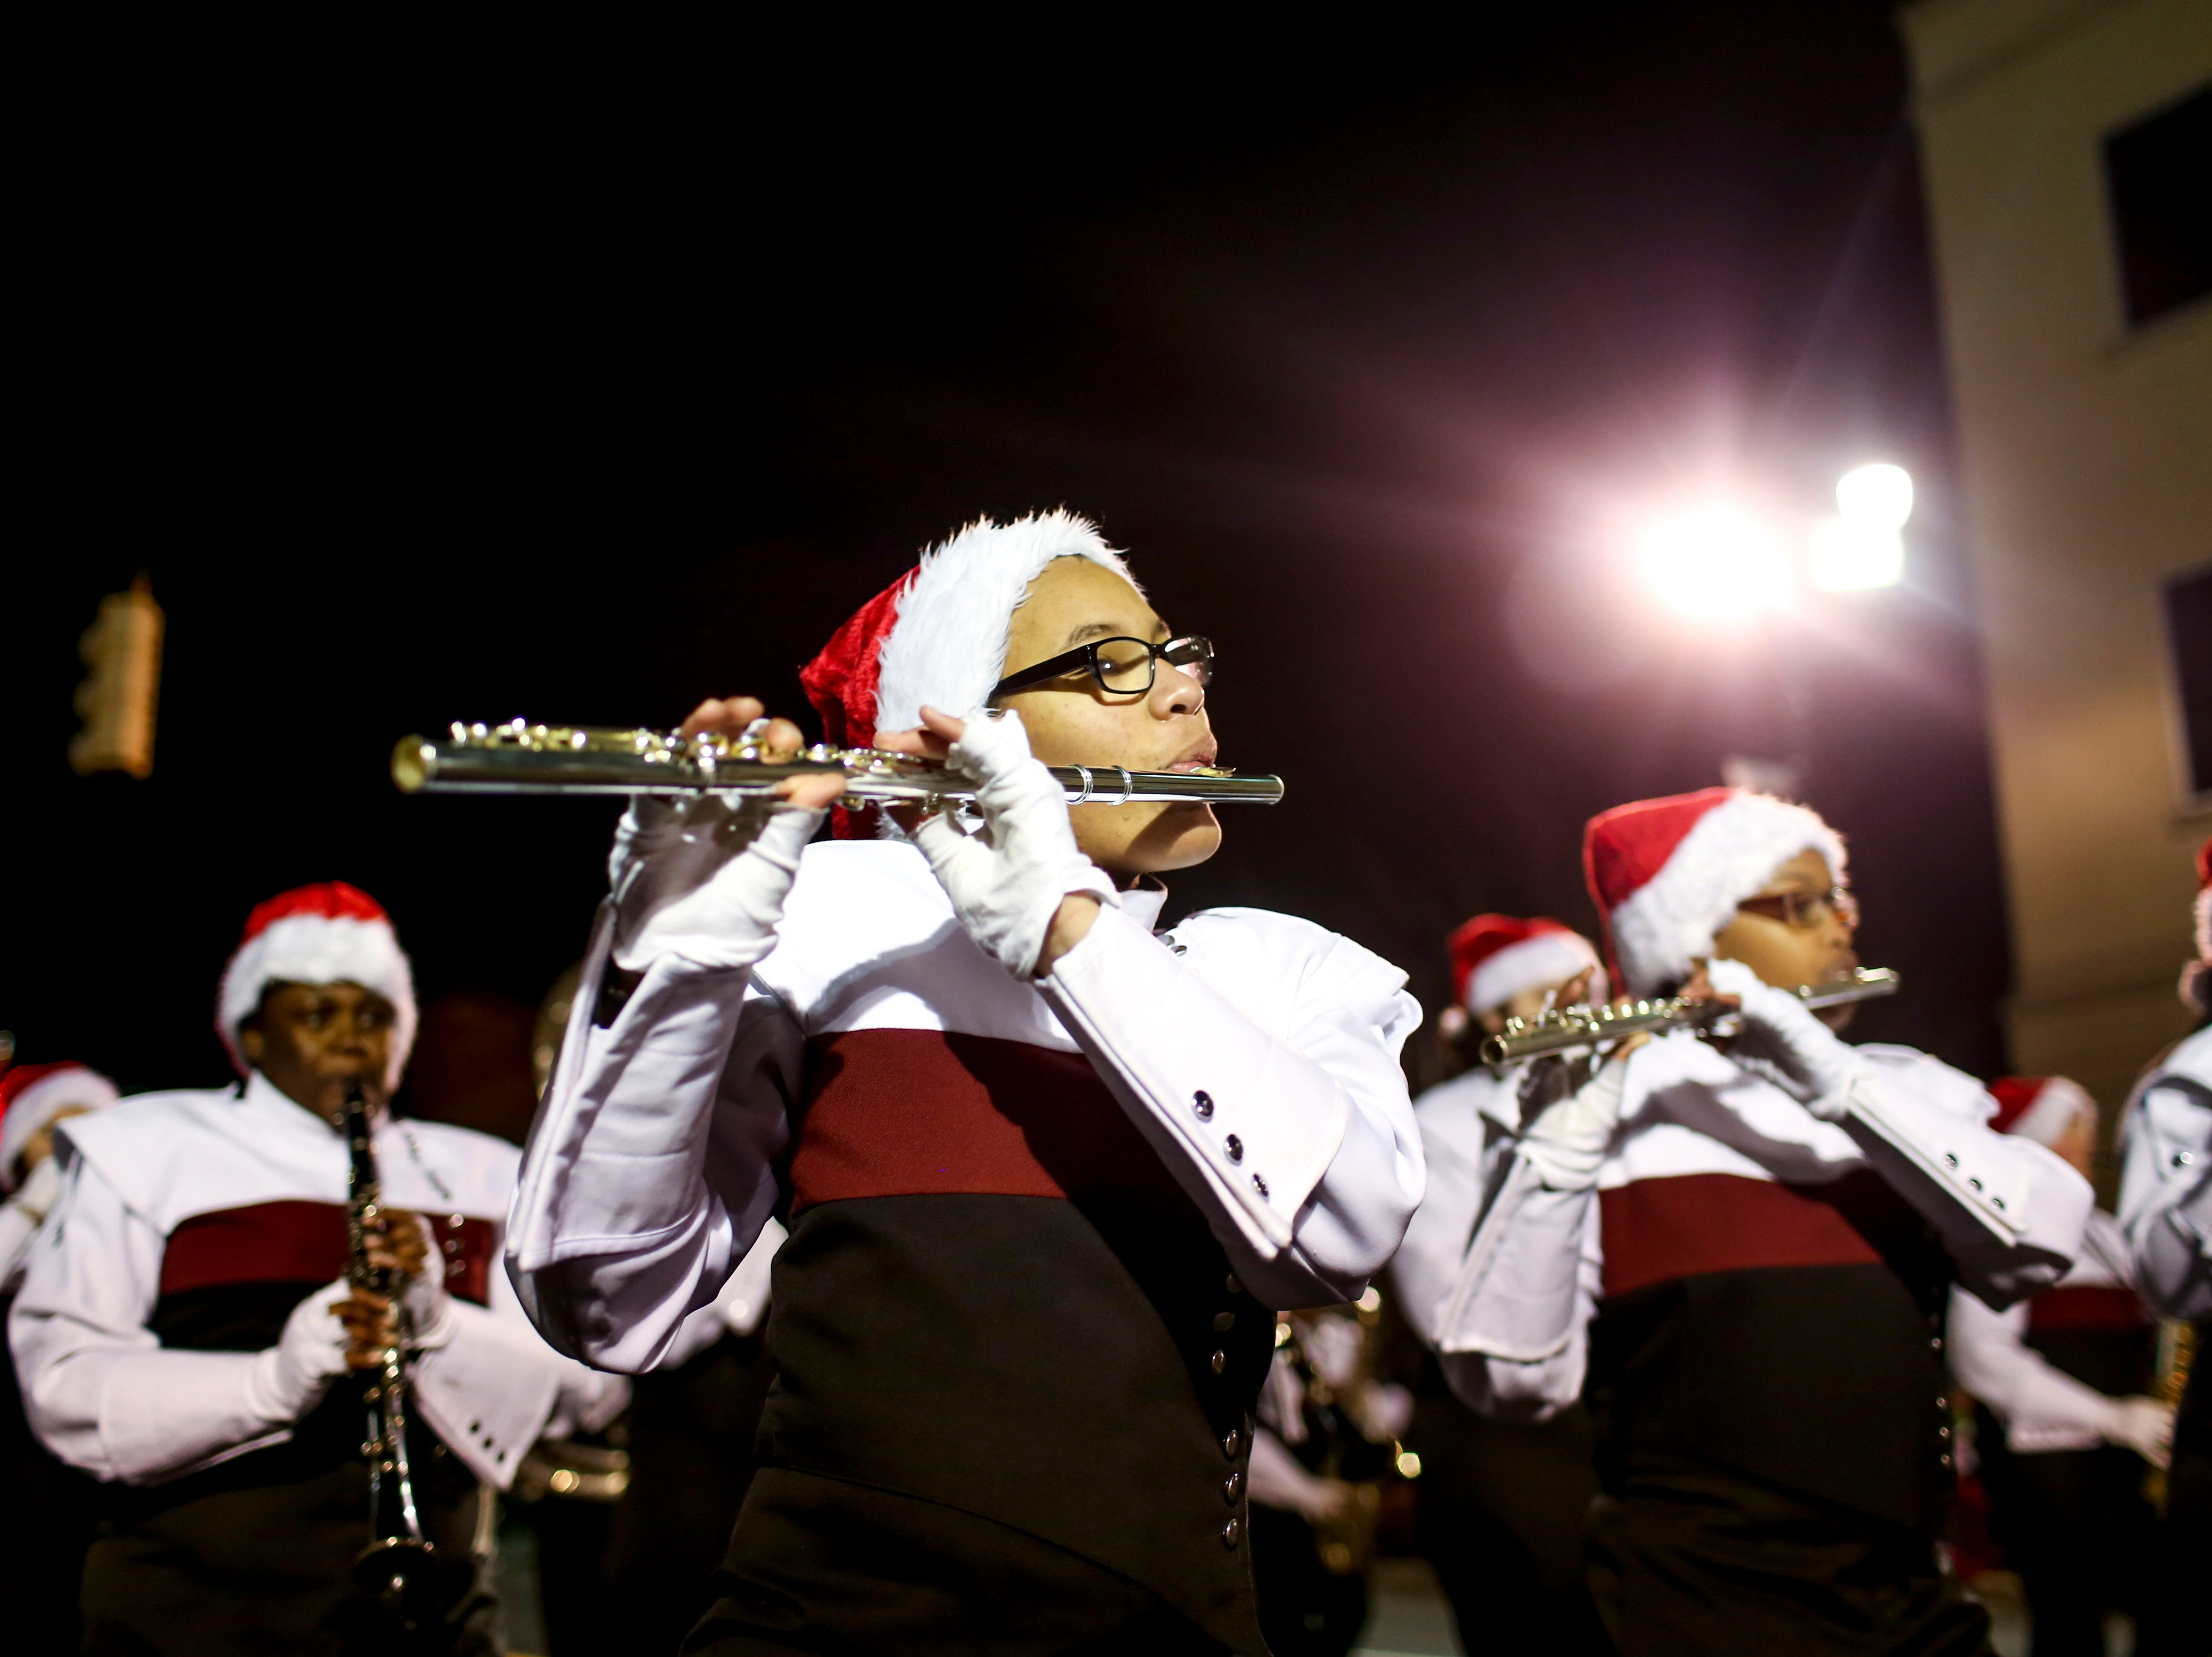 Hundreds lined up flanking Main Street to watch the annual Christmas Parade that brought local high school bands, dance groups, and many others to downtown in Jackson, Tenn., on Monday, Dec. 3, 2018.